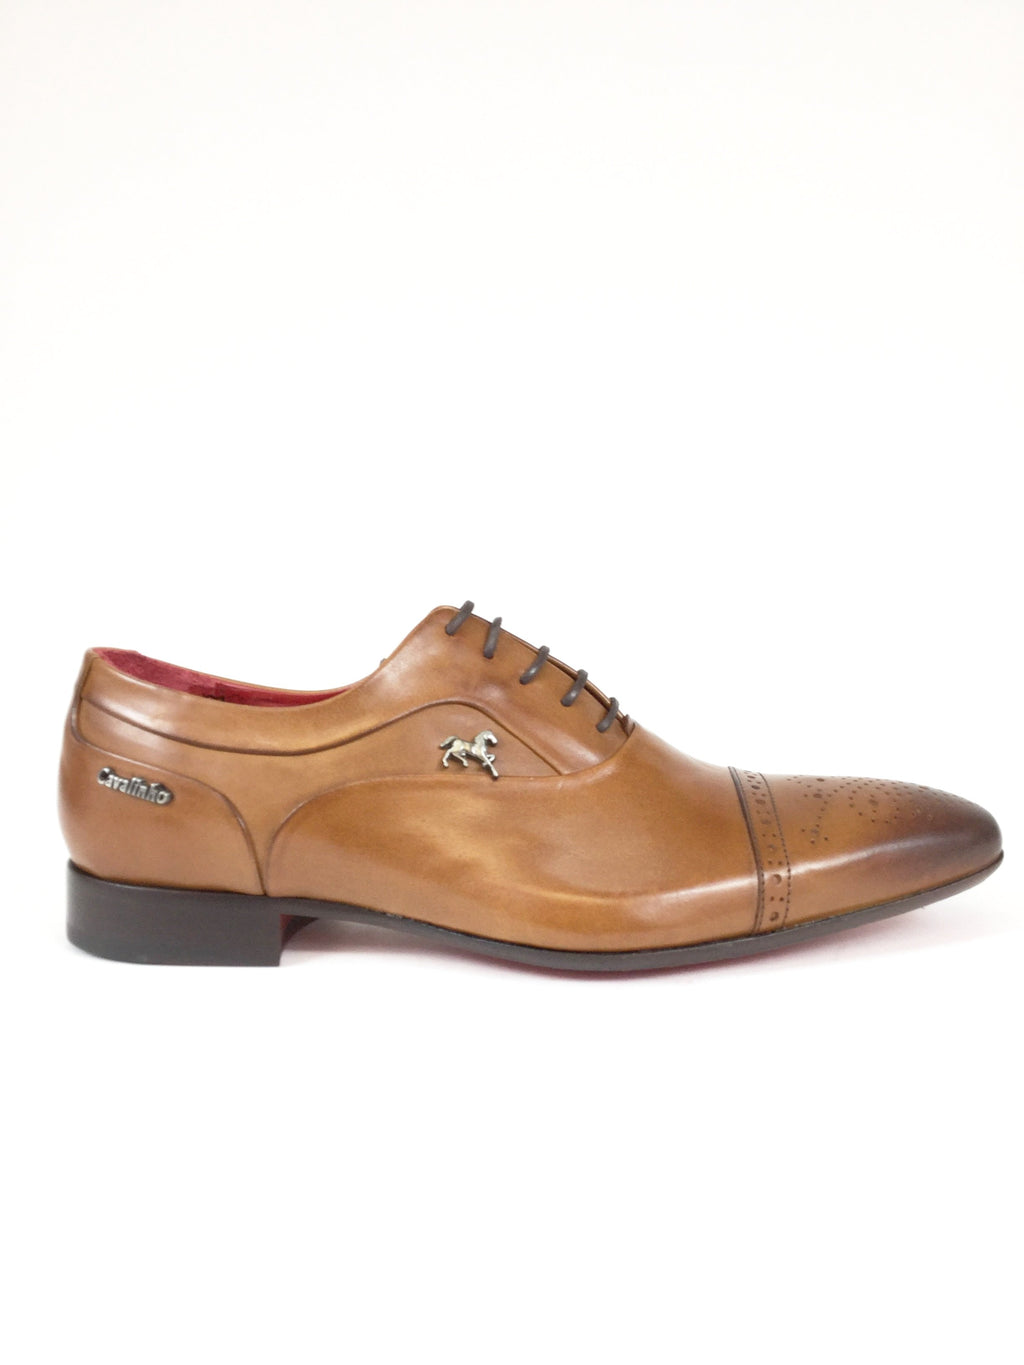 Cognac Toe Cap Oxford Brogue